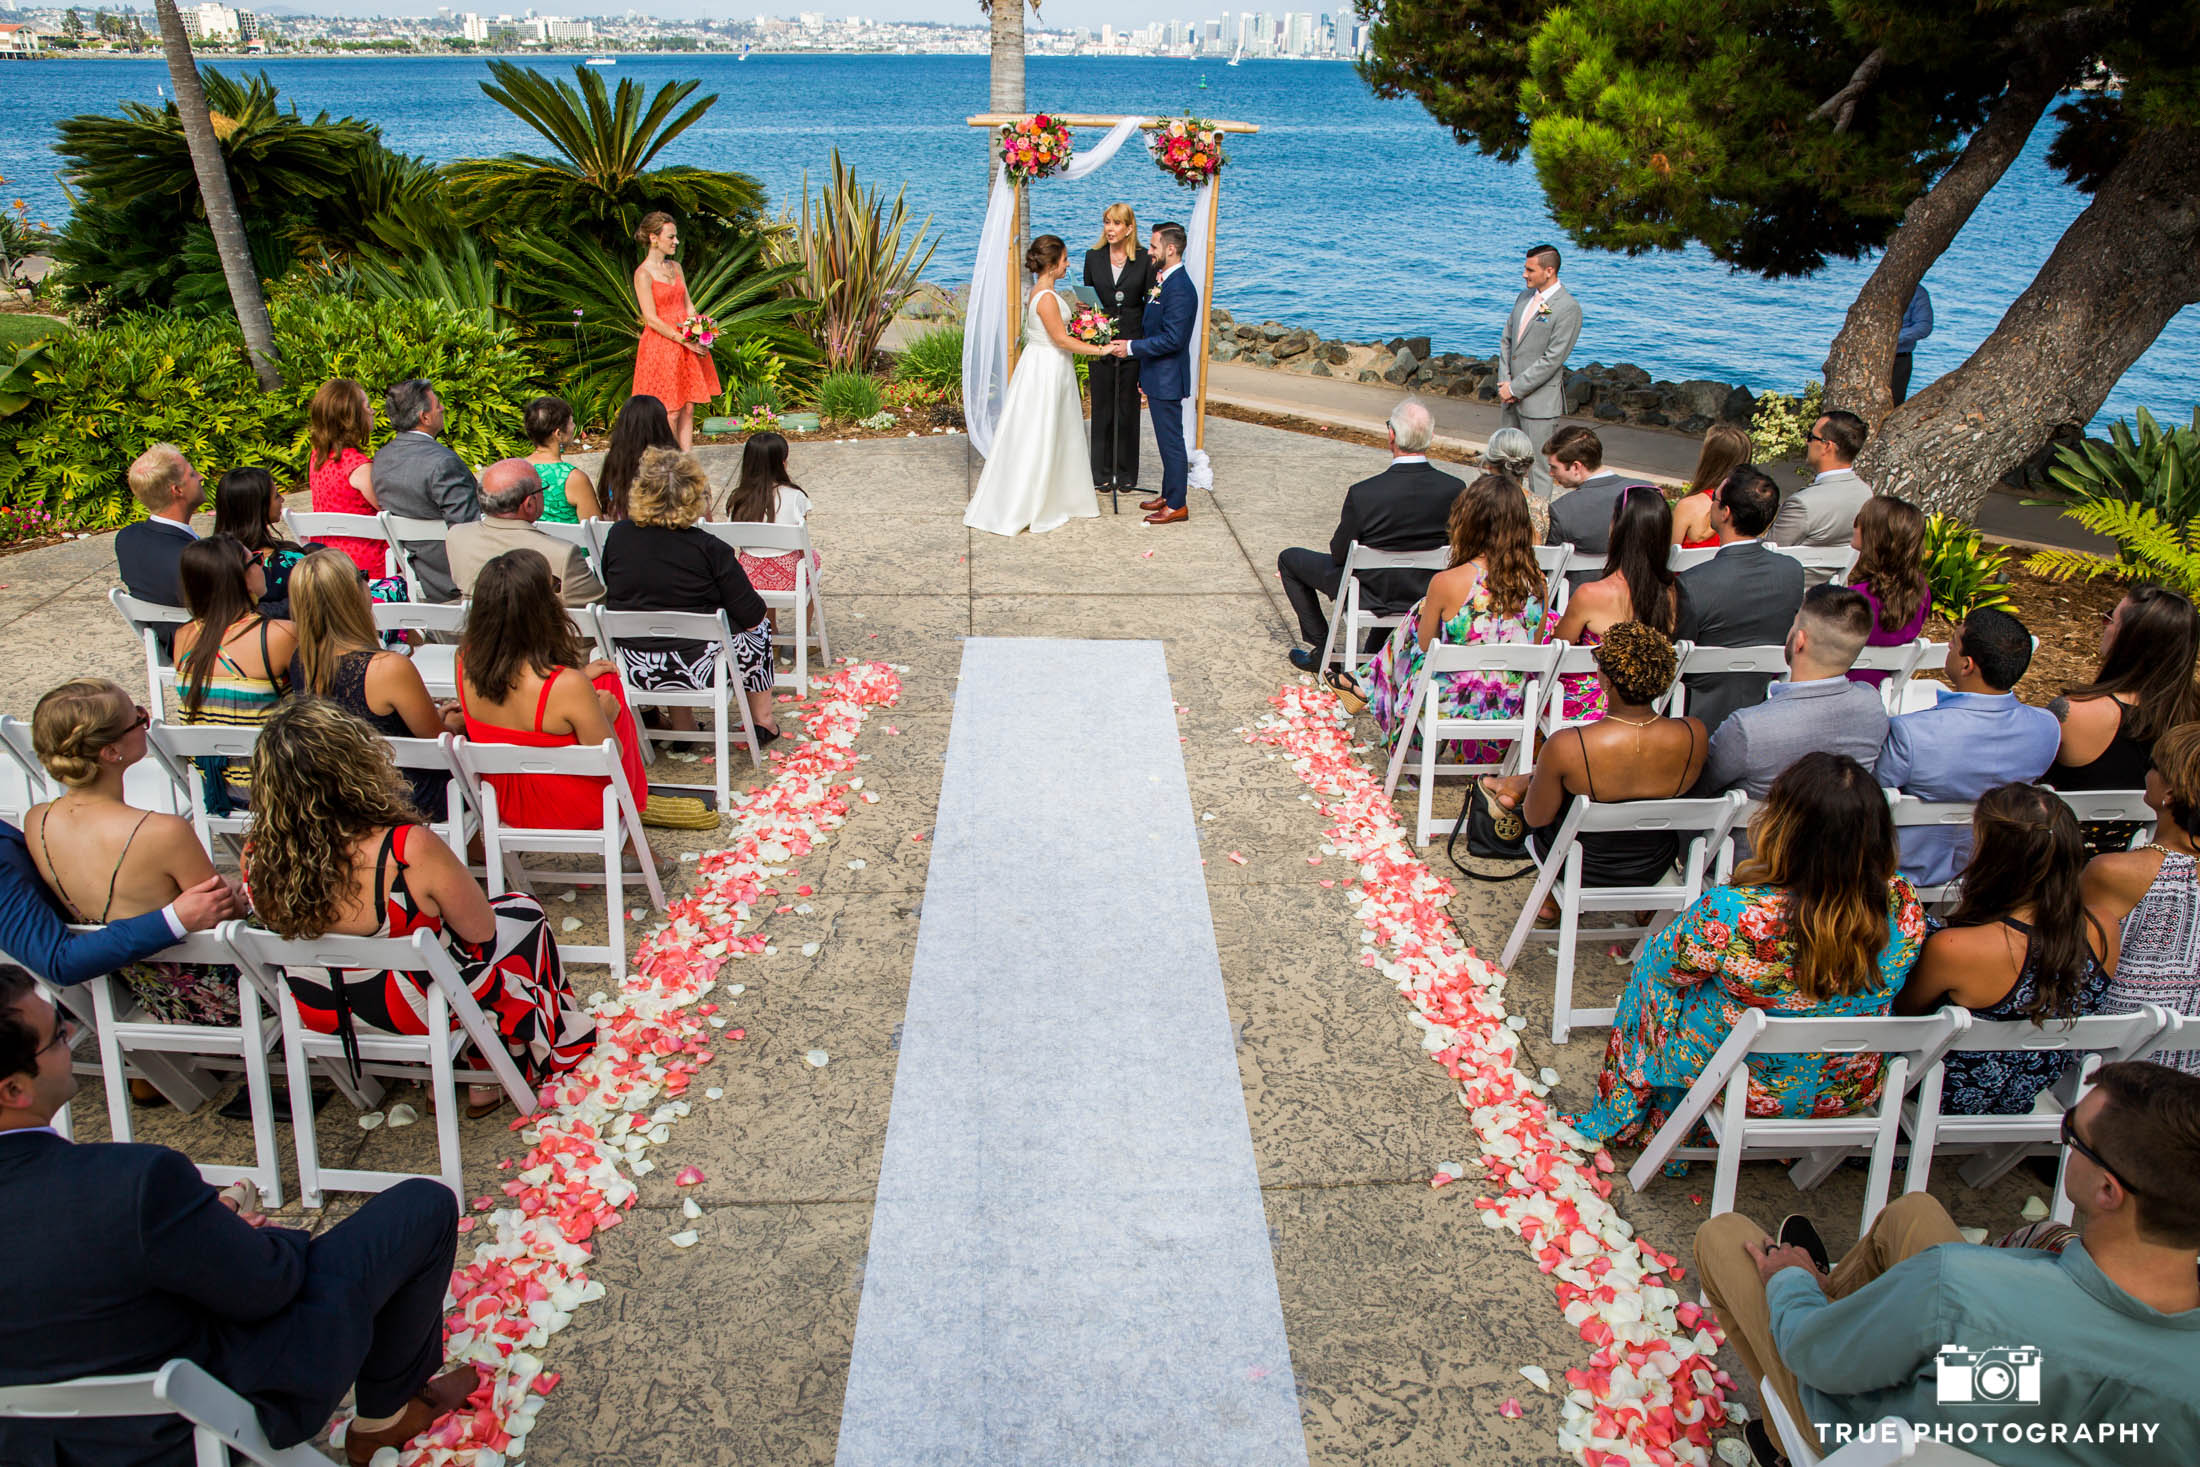 Colorful wedding at San Diego harbor